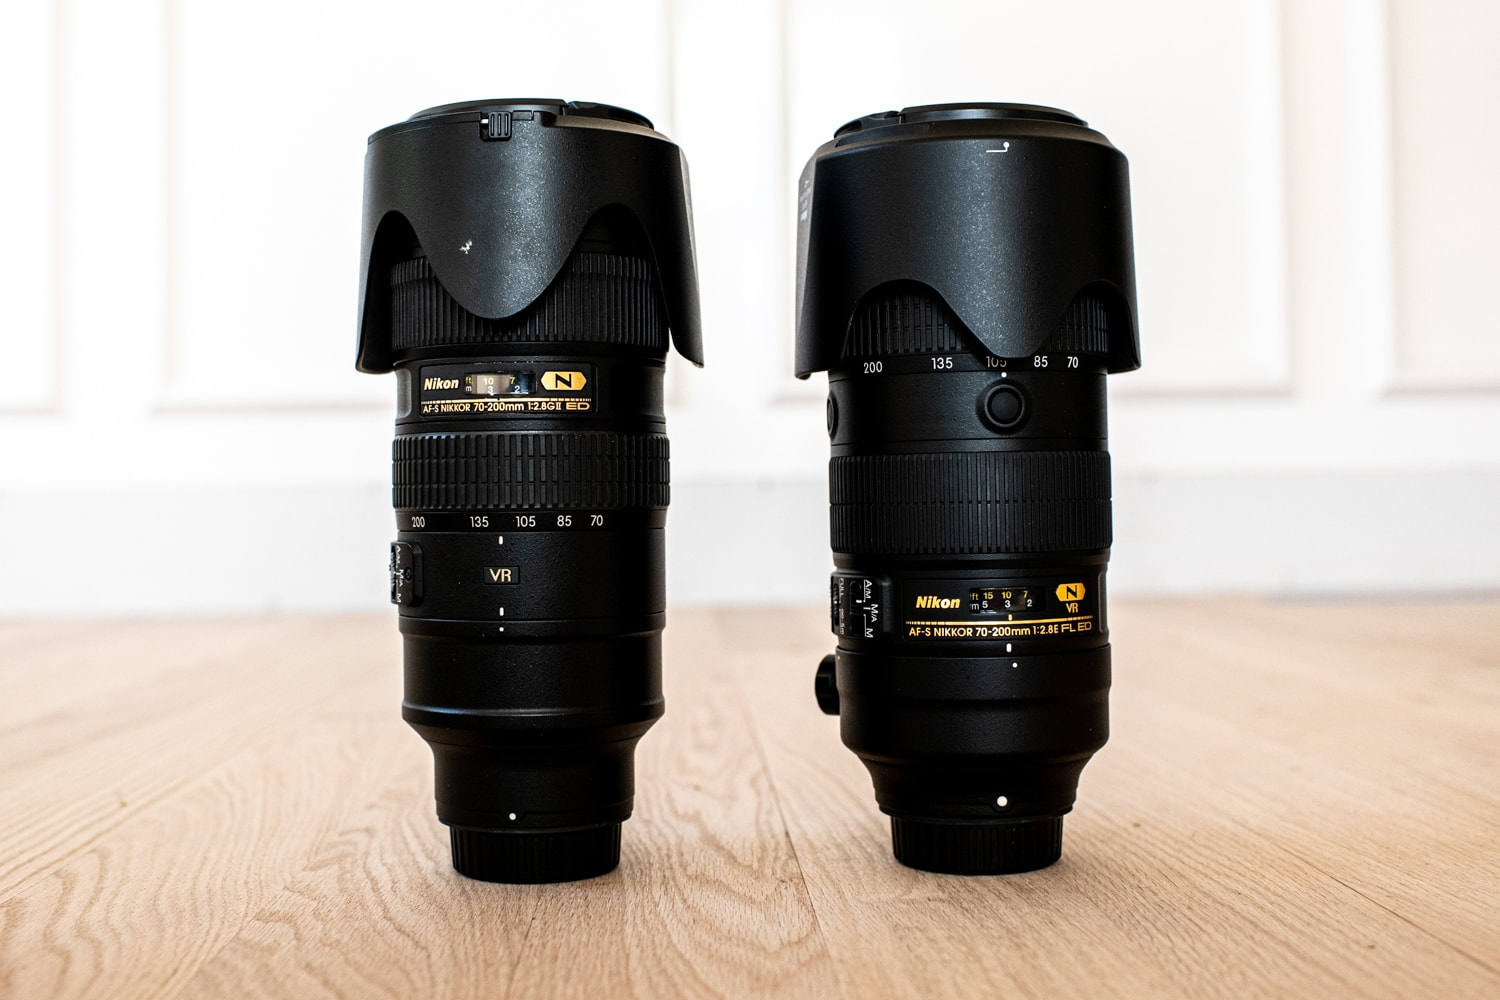 Nikkor 70-200mm lens for wedding photography.